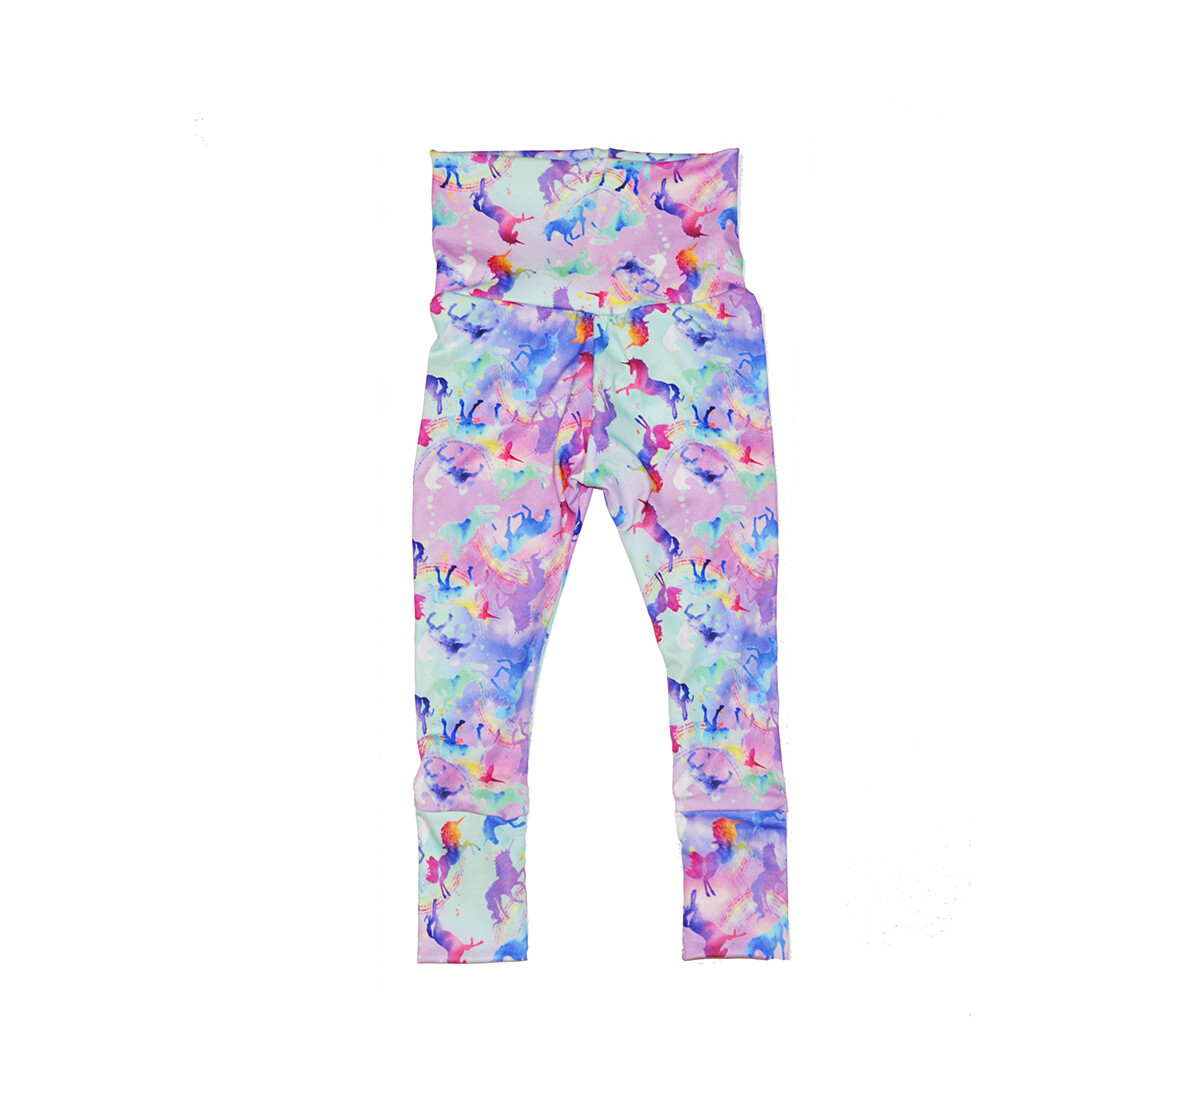 Little Sprout Pants™ in Celeste | Grow With Me Leggings - Cozy Jersey